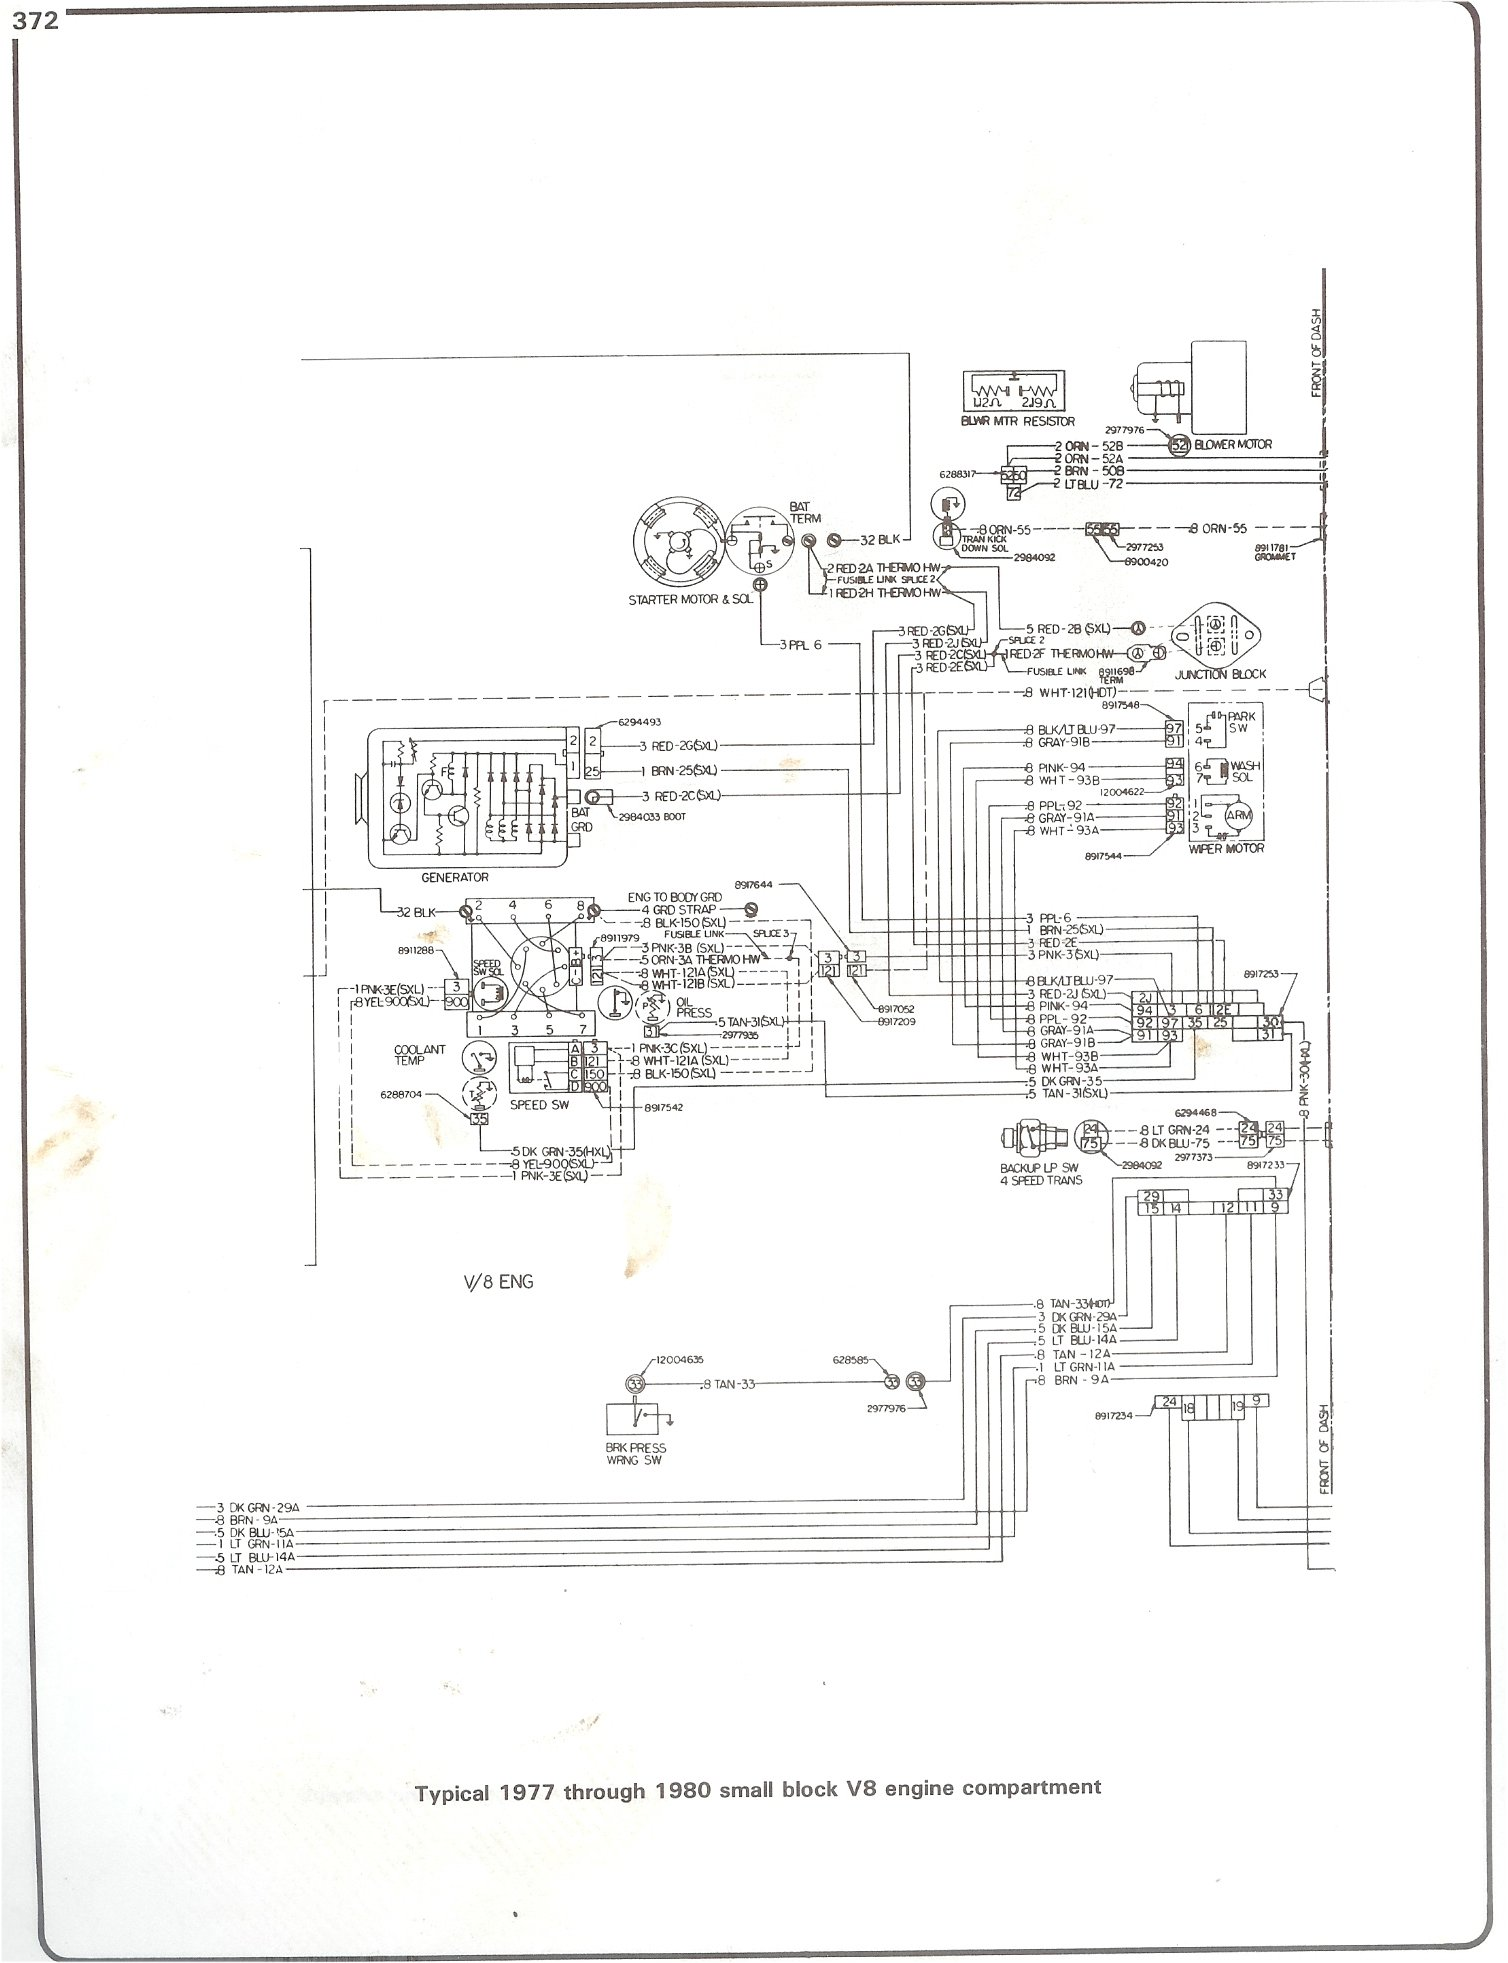 Complete 73 87 Wiring Diagrams 1990 Gmc K1500 4wd Diagram 77 80 Sbc Engine